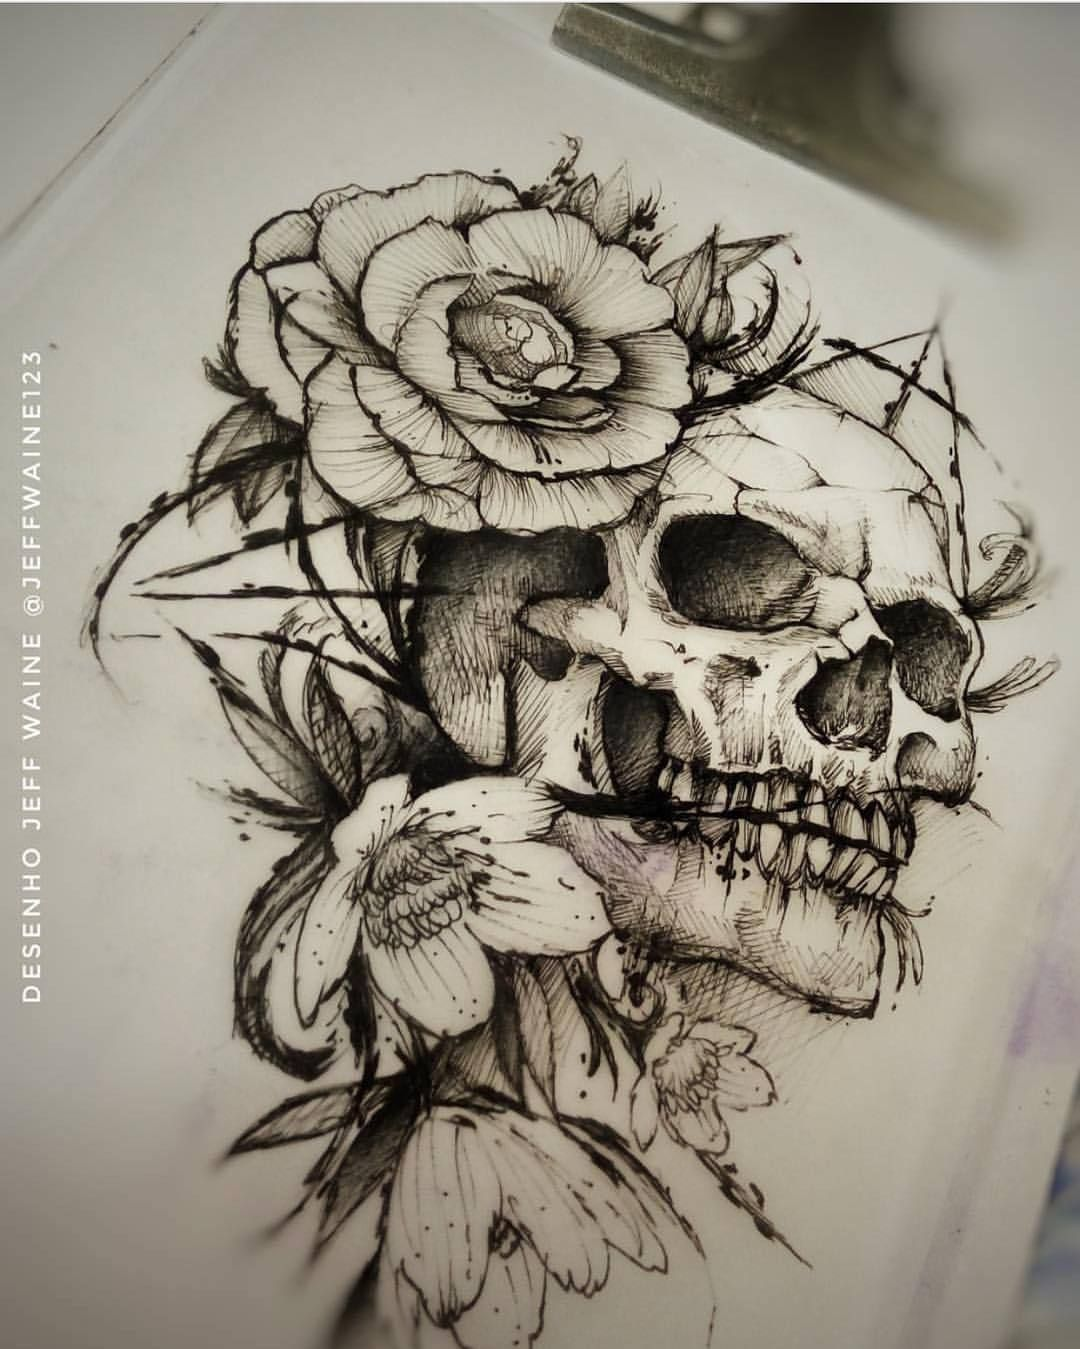 saddam tattoo studio desenho do jeffwaine123 artista top que faz tatuagens pinterest. Black Bedroom Furniture Sets. Home Design Ideas